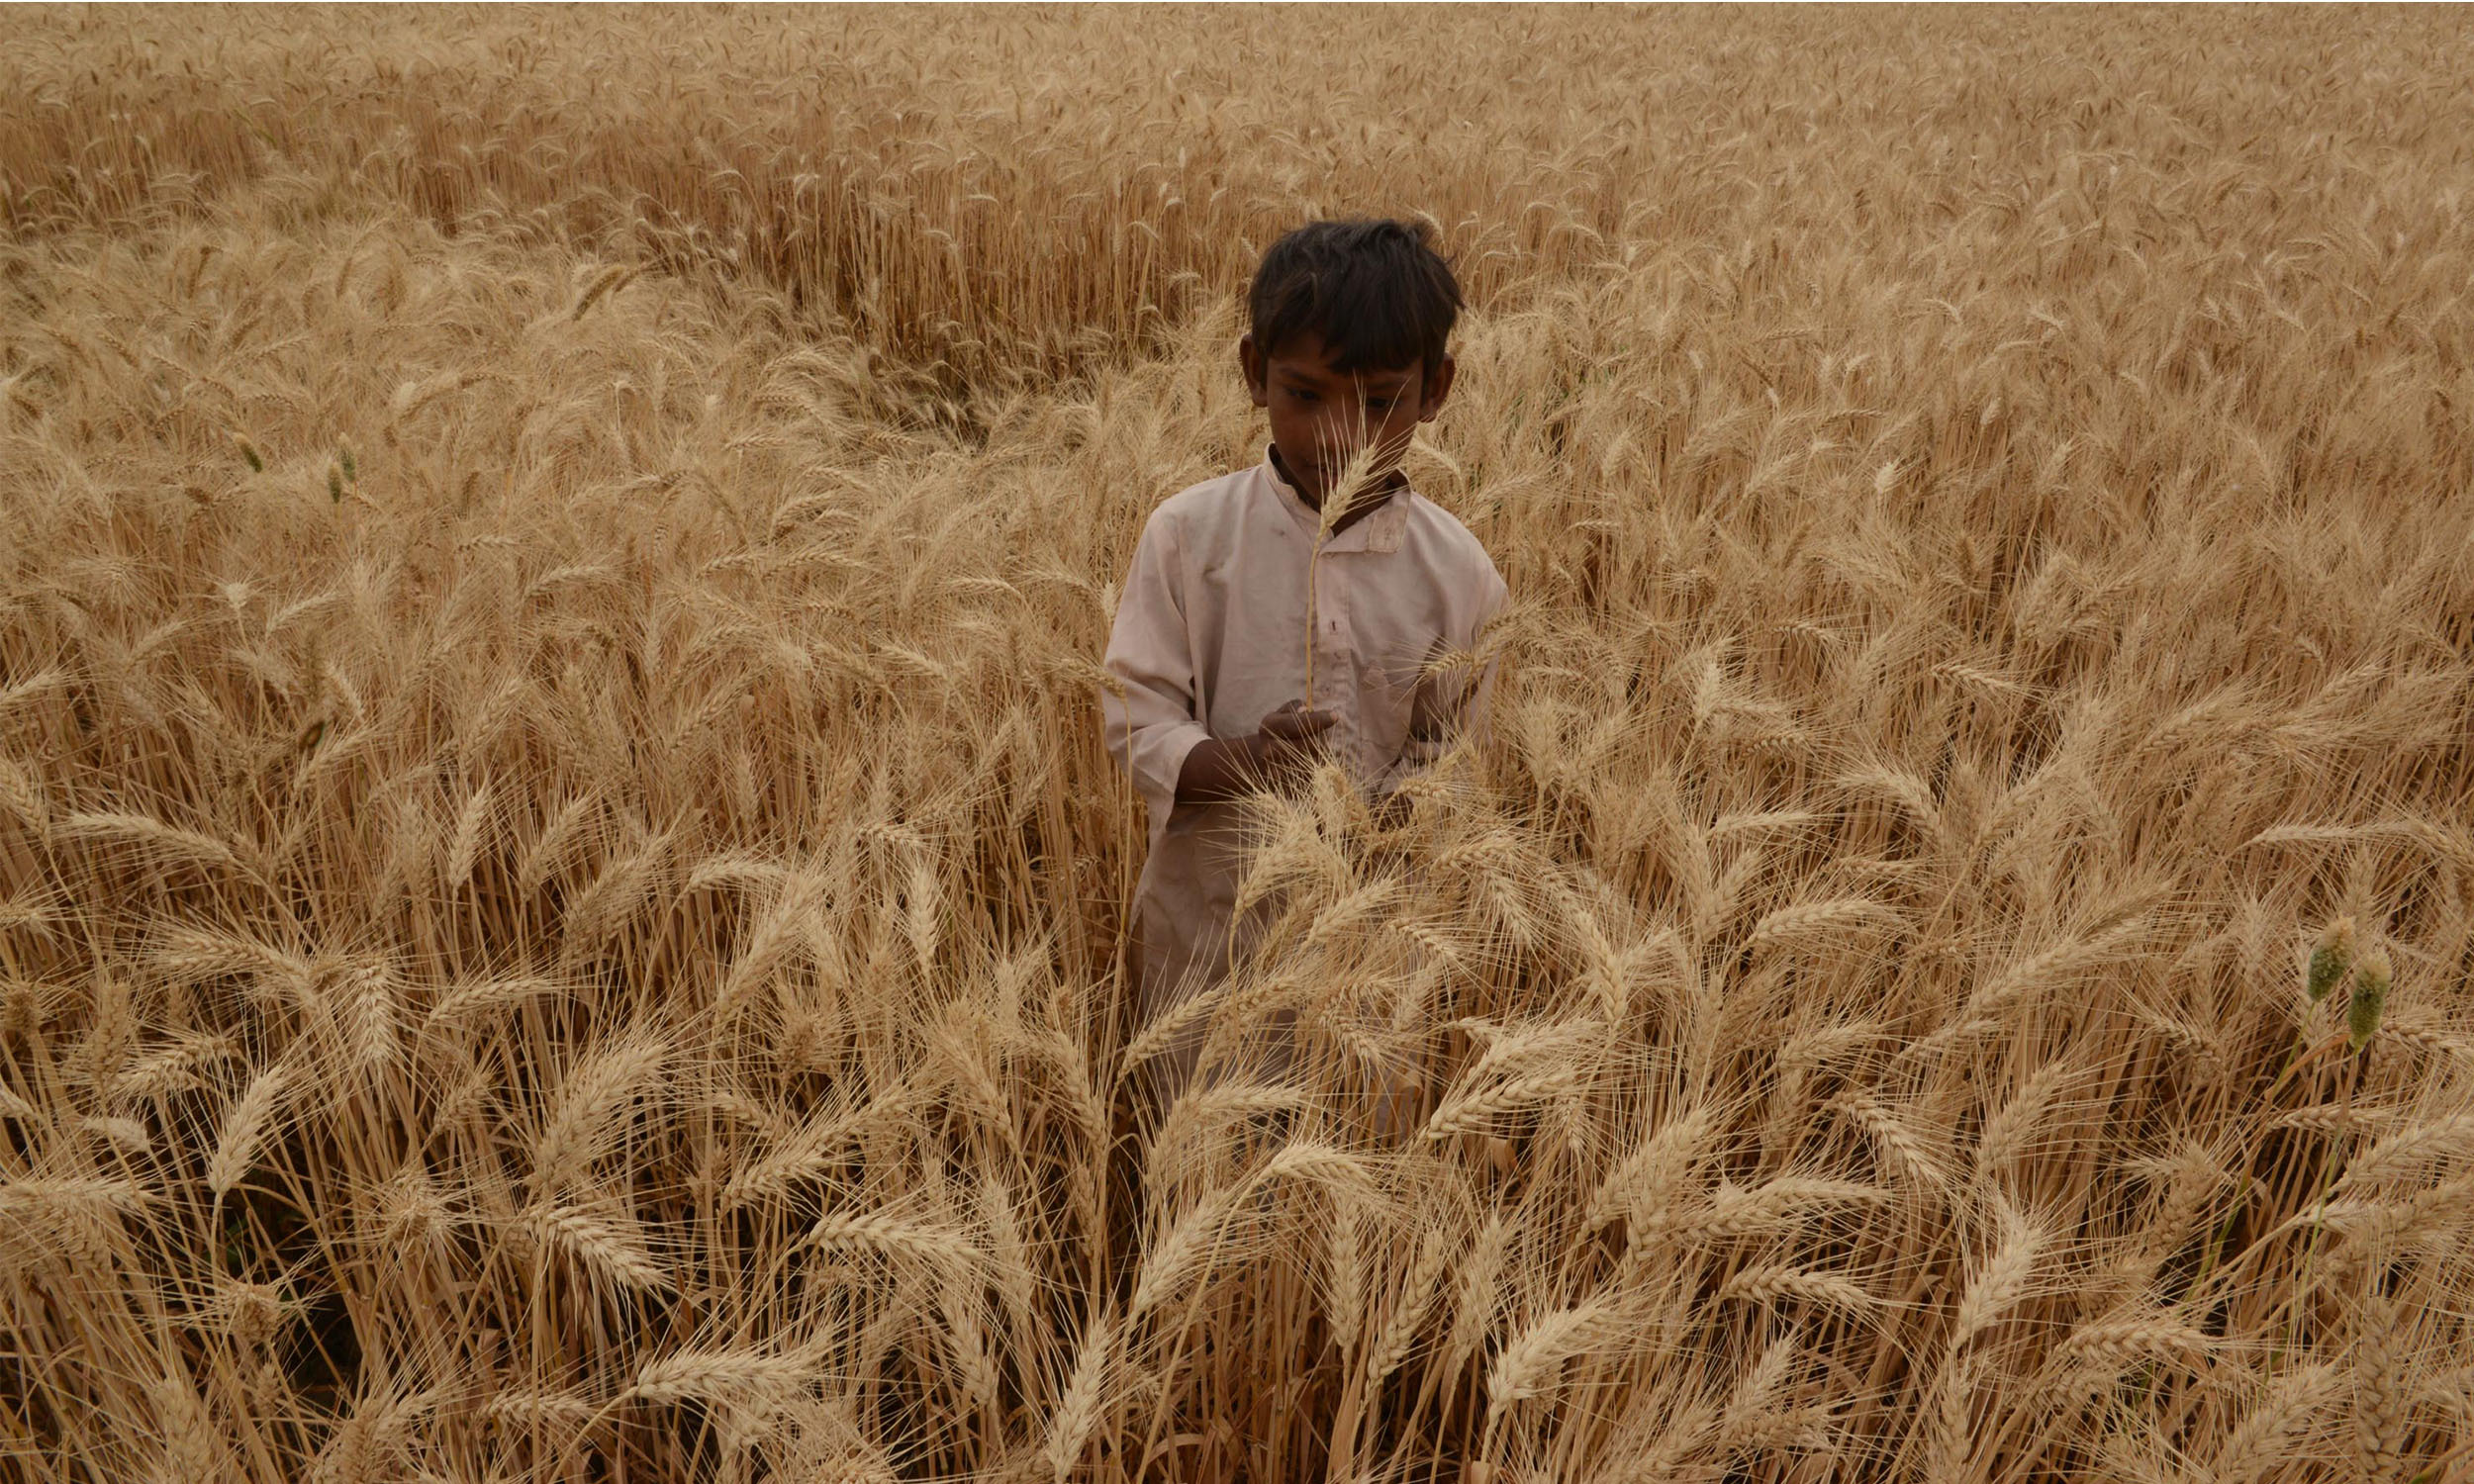 A boy in a wheat field | Azhar Jafri, White Star